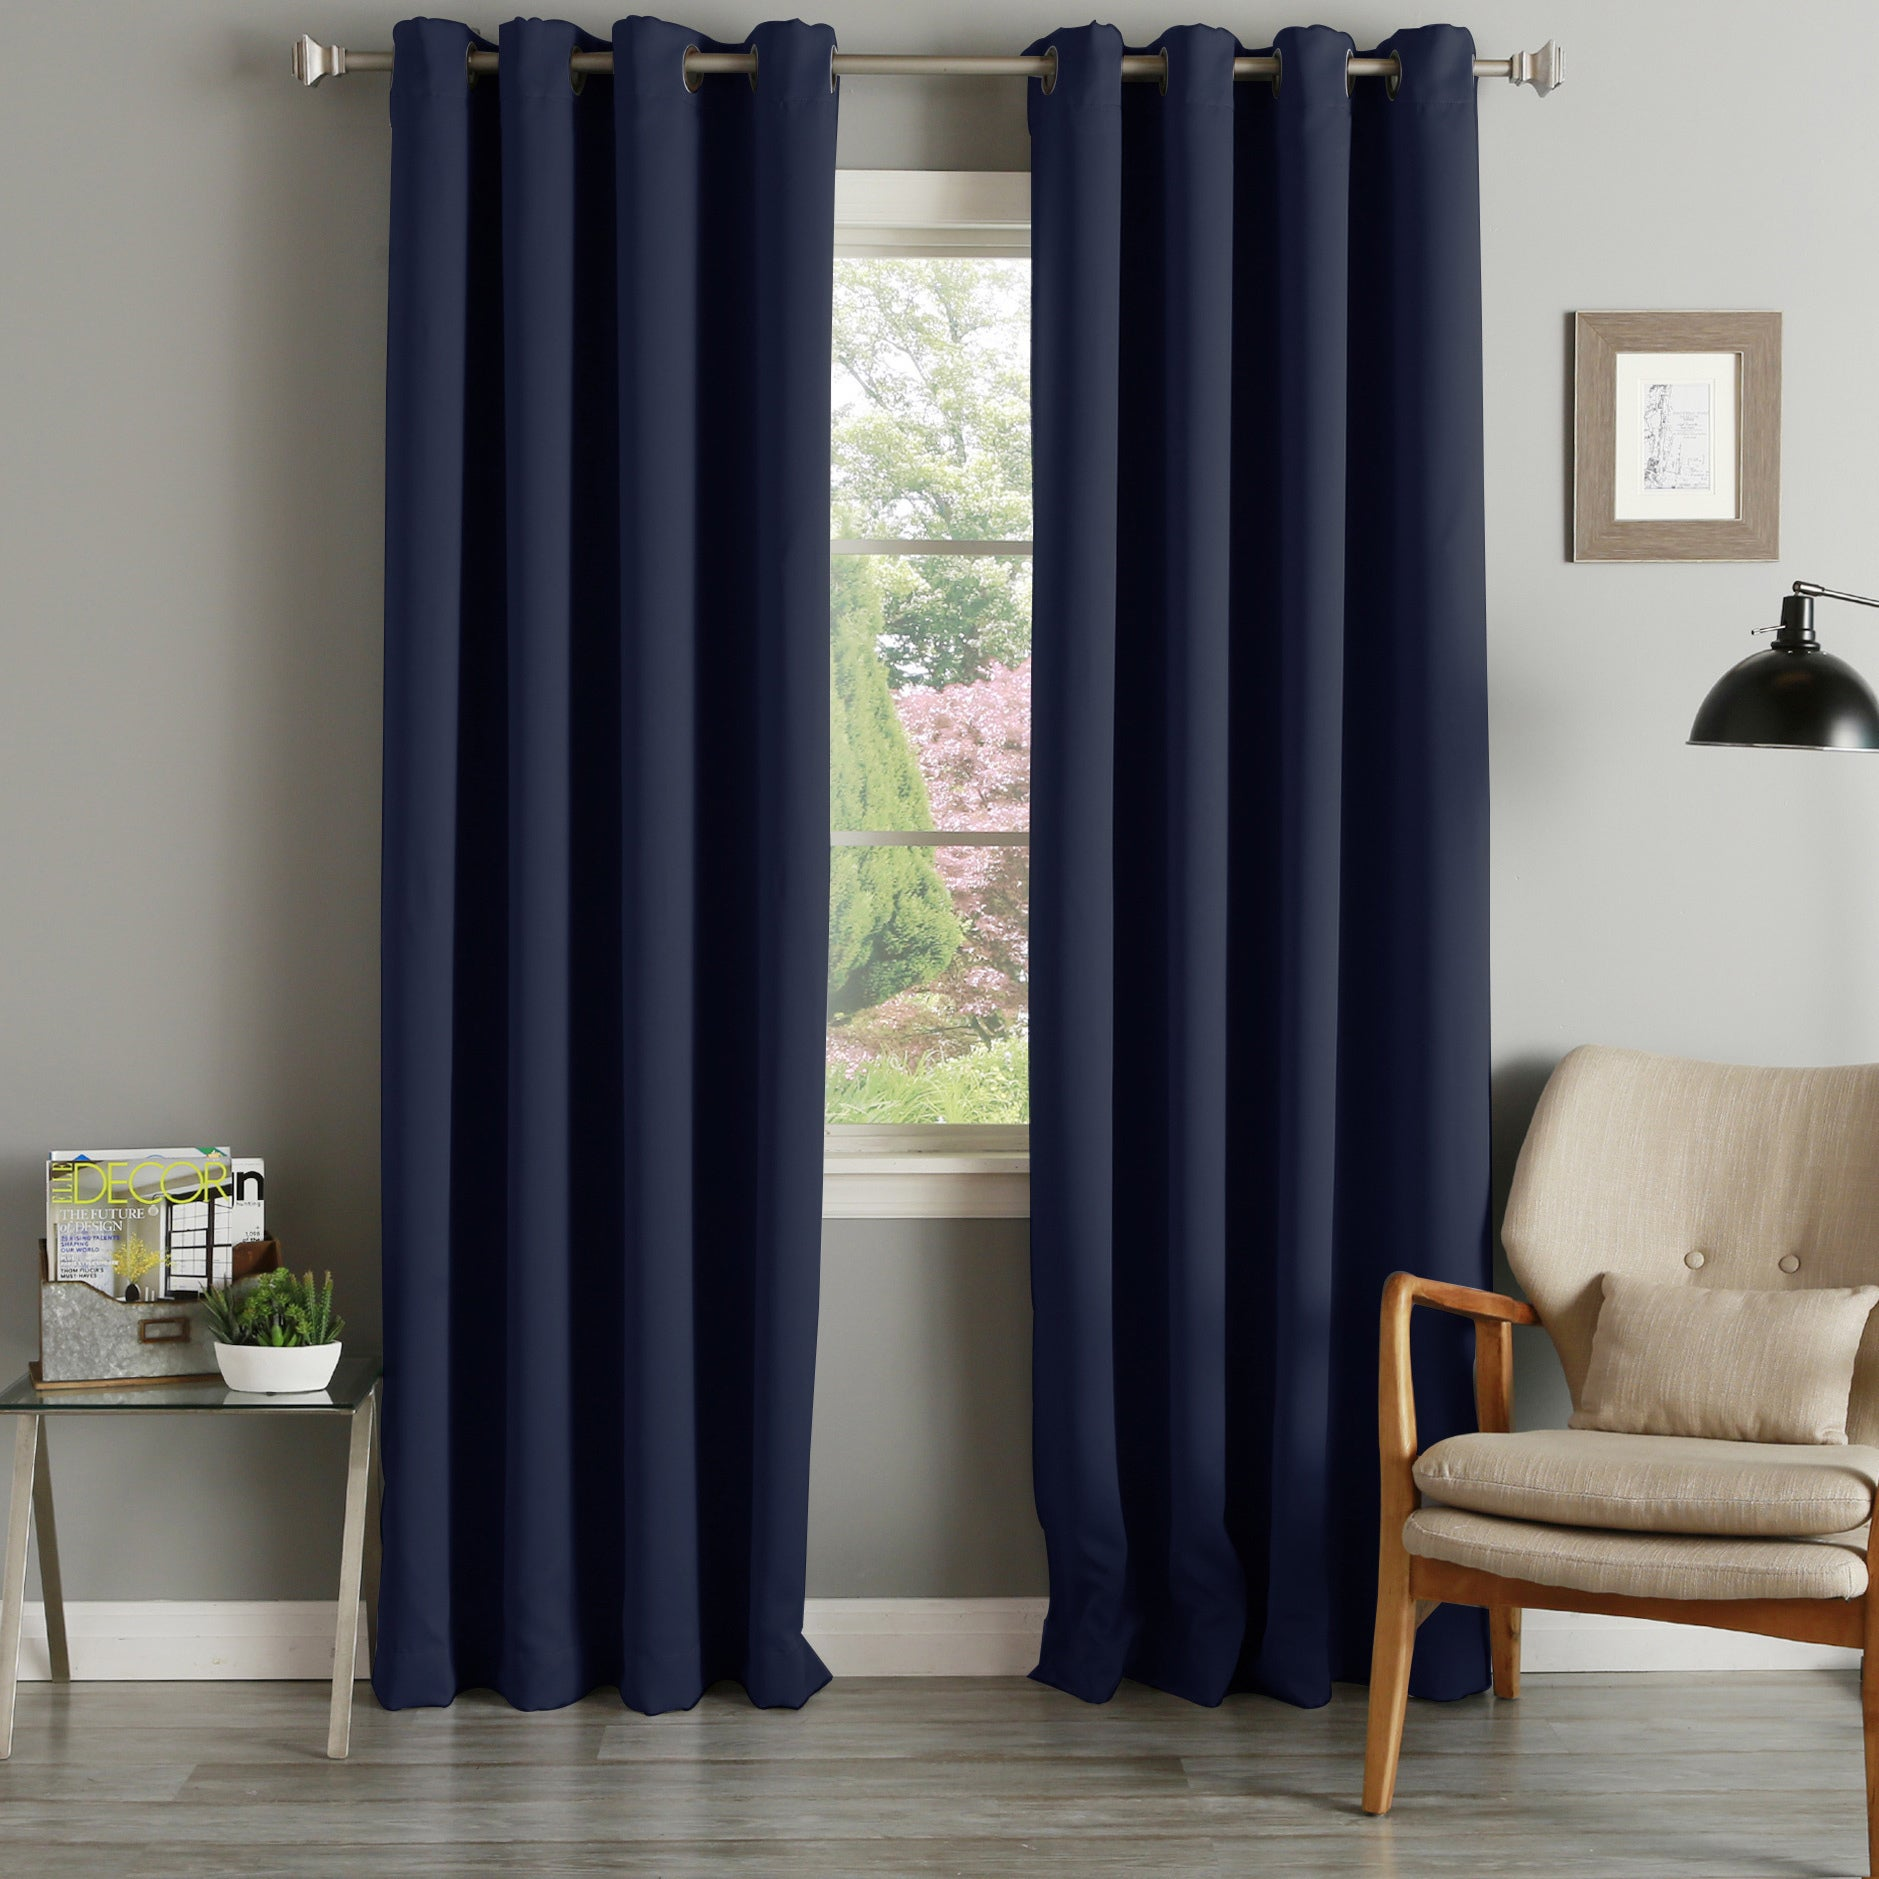 Aurora Home Grommet Top Thermal Insulated 96 Inch Blackout Curtain Panel Pair 52 X 96